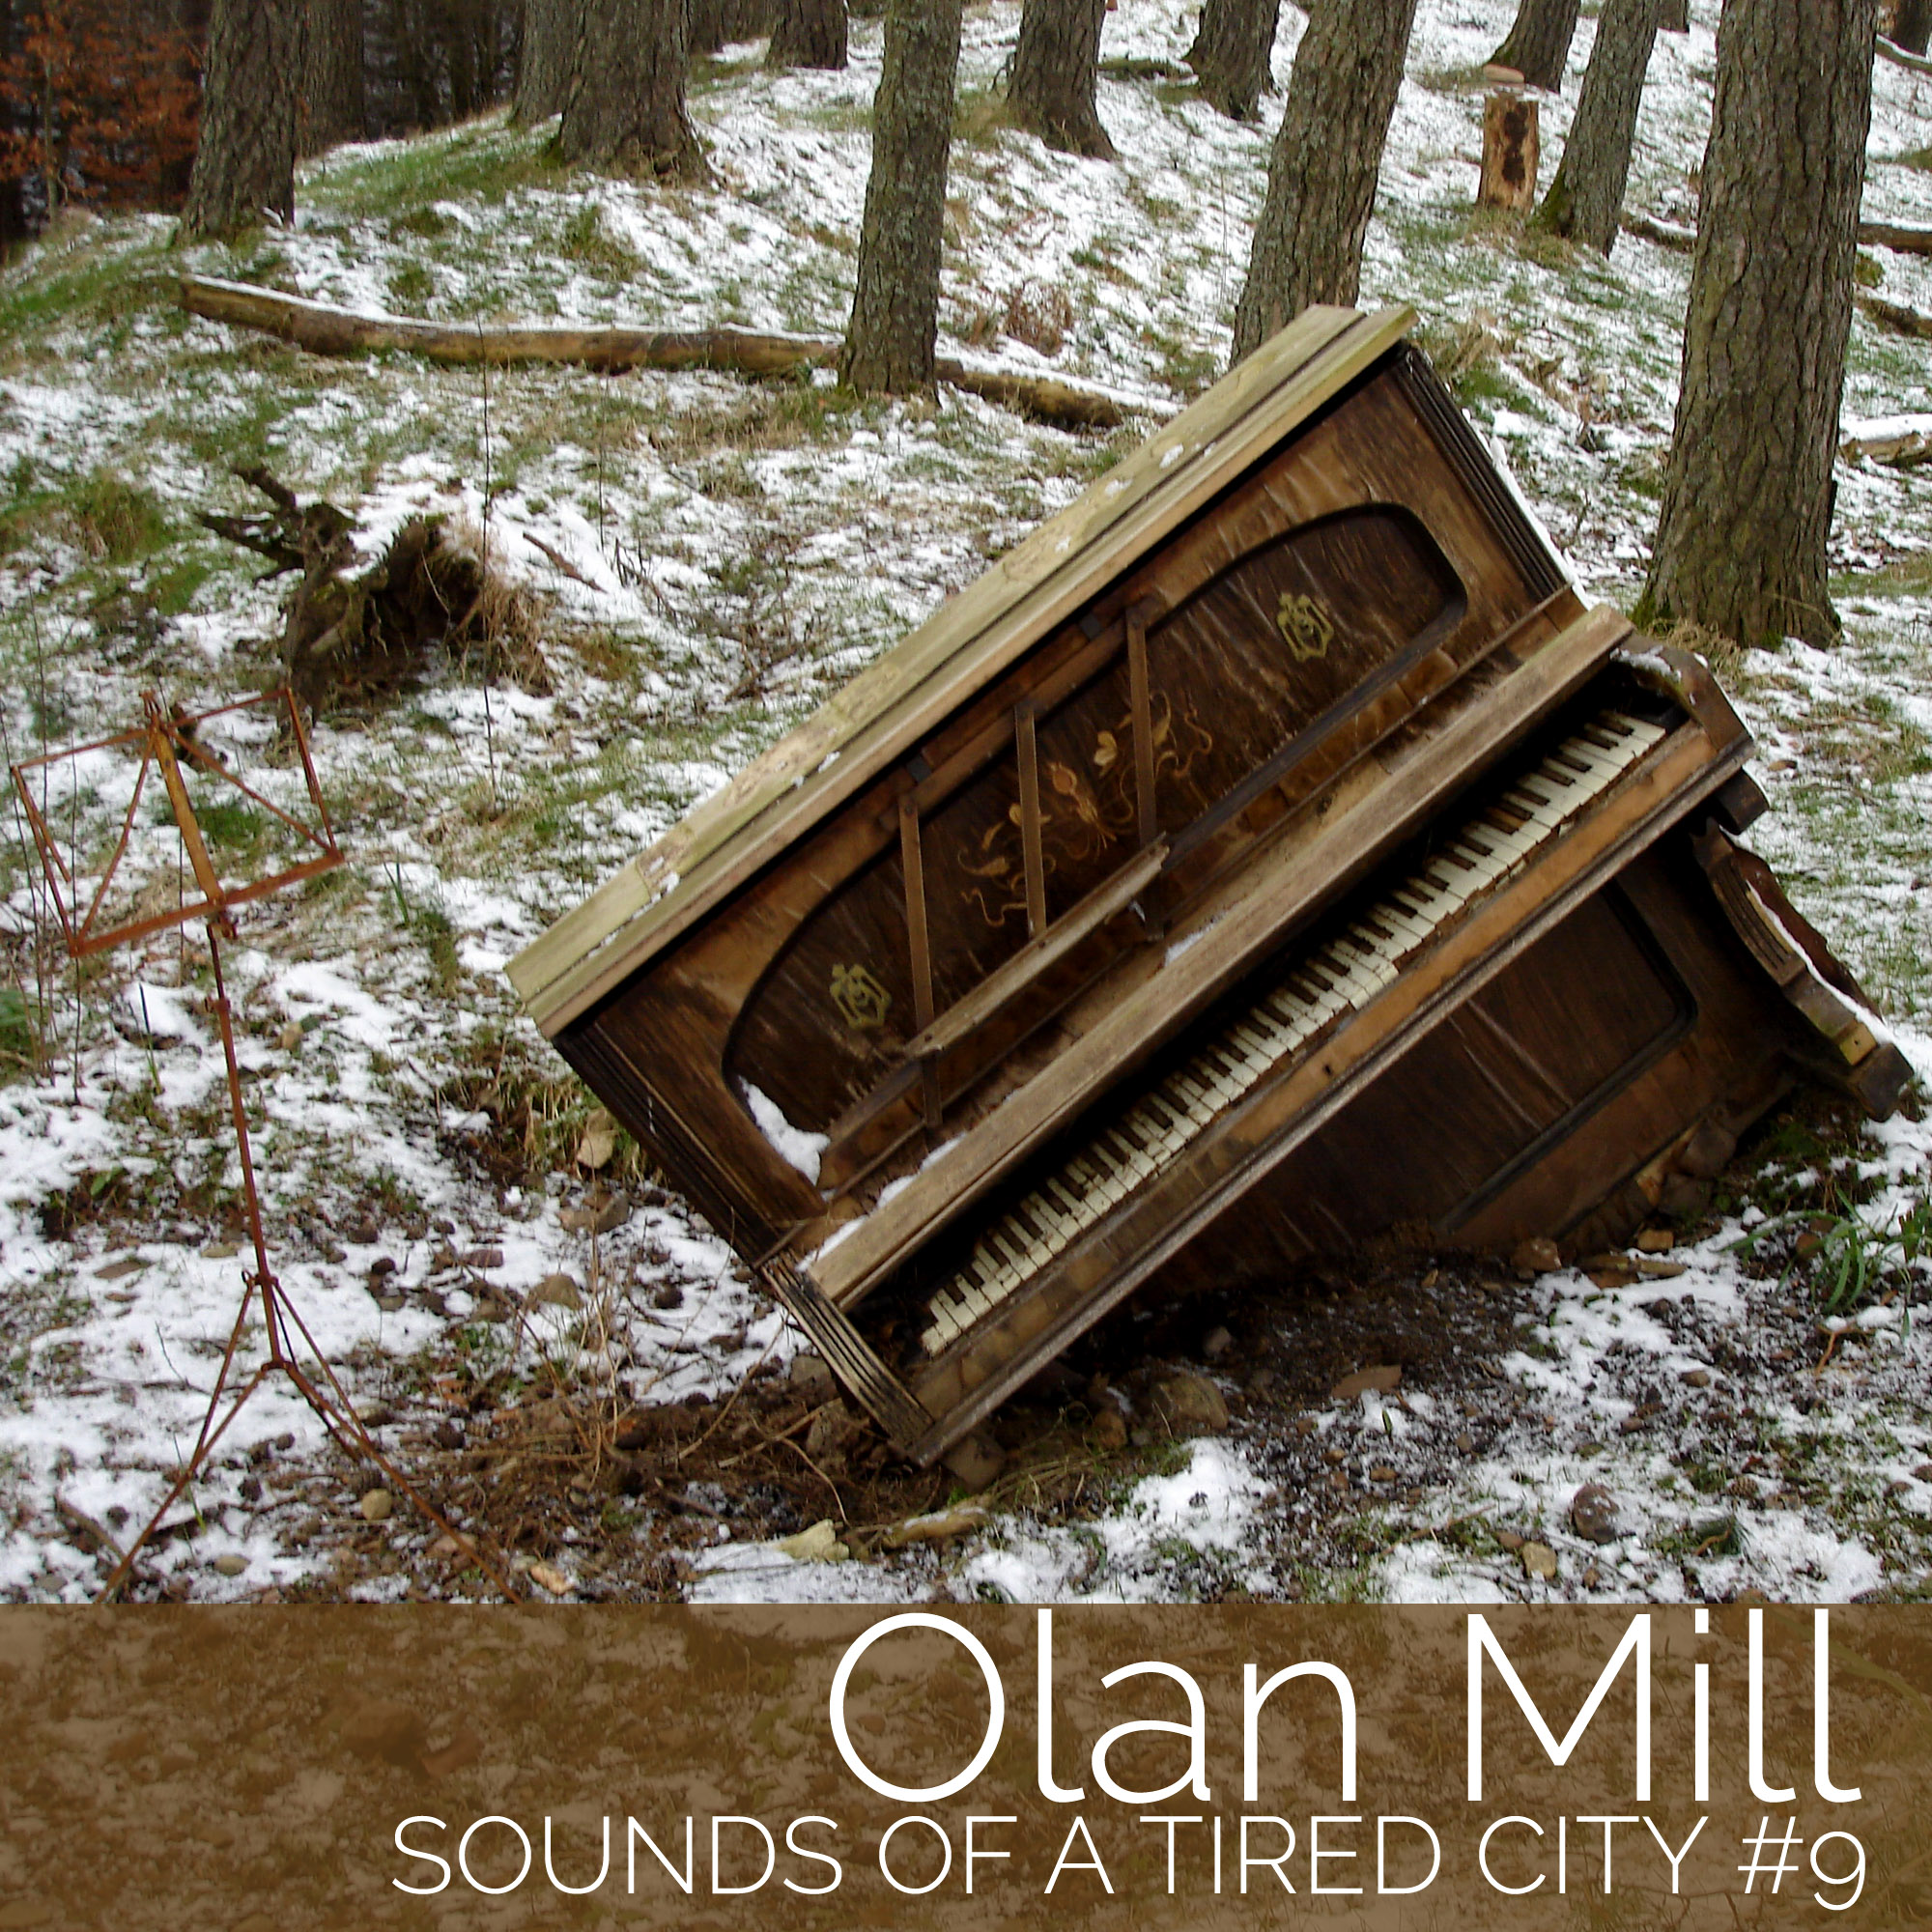 See who else is listening to Olan Mill and discuss the latest tracks, news, and features with fans at trueffil983.gq See who else is listening to Olan Mill and discuss the latest tracks, news, and features with fans at trueffil983.gq Playing via Spotify Playing via YouTube. Playback options.